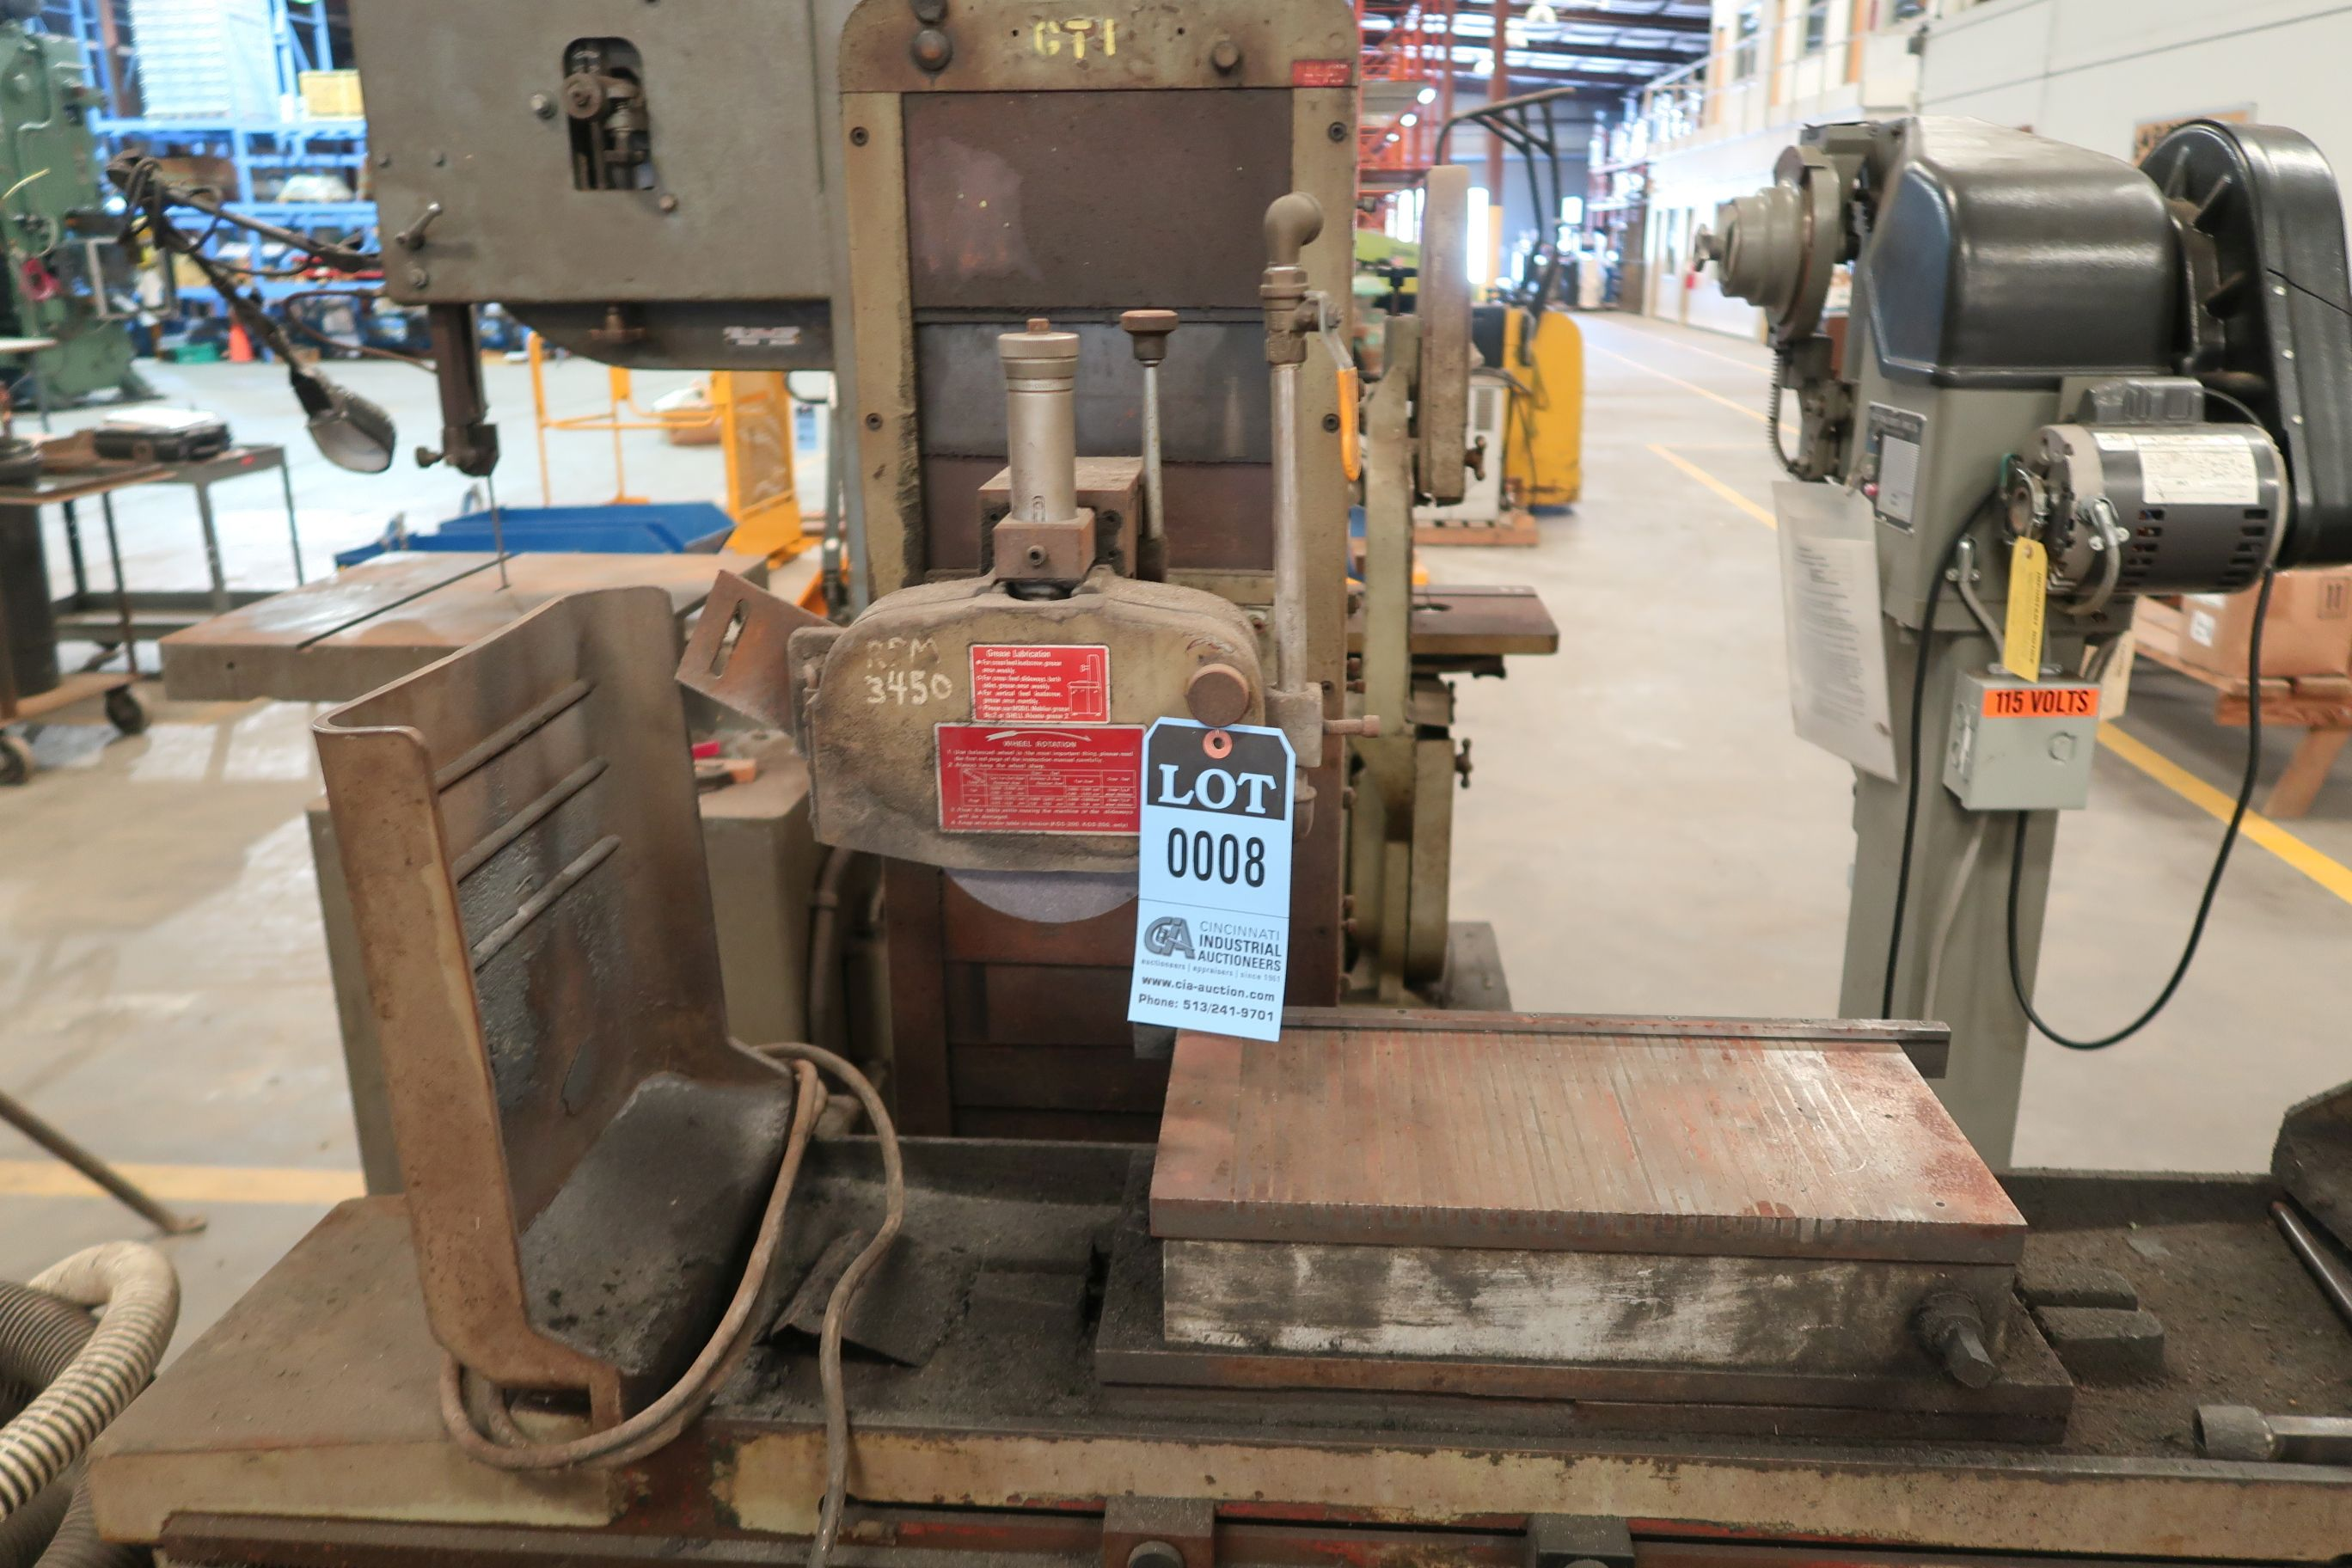 """8"""" X 16"""" KENT MODEL KGS-250AH HYDRAULIC SURFACE GRINDER; S/N 781202-17 WITH DUST COLLECTOR - Image 3 of 7"""